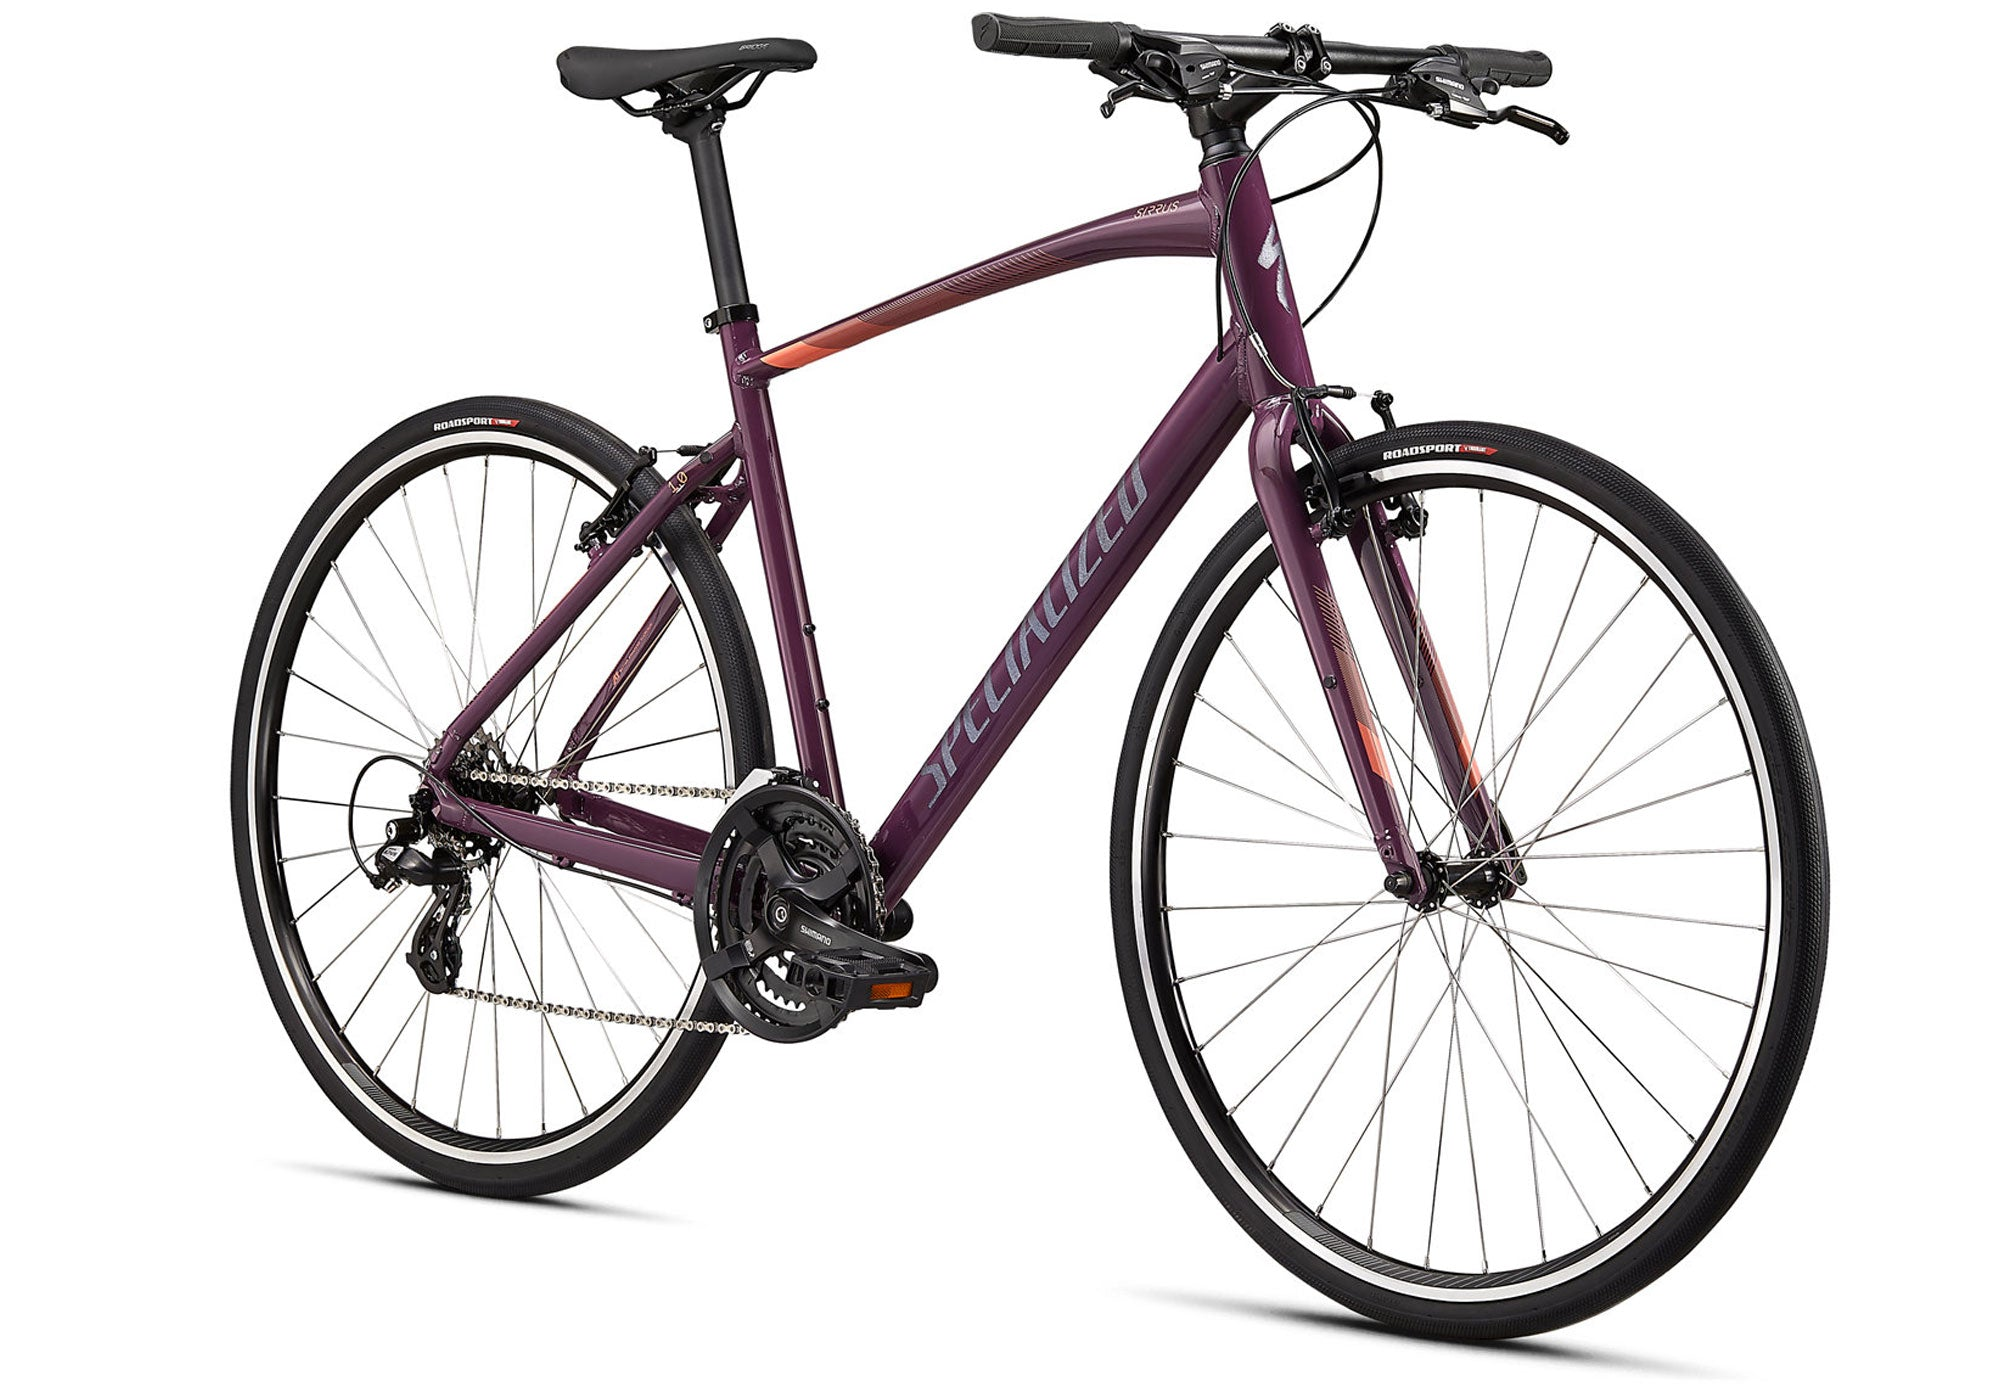 2021 Specialized Sirrus 1.0, Gloss Cast Lilac, Unisex Fitness Bike, Wol;lys Wheels Sydney